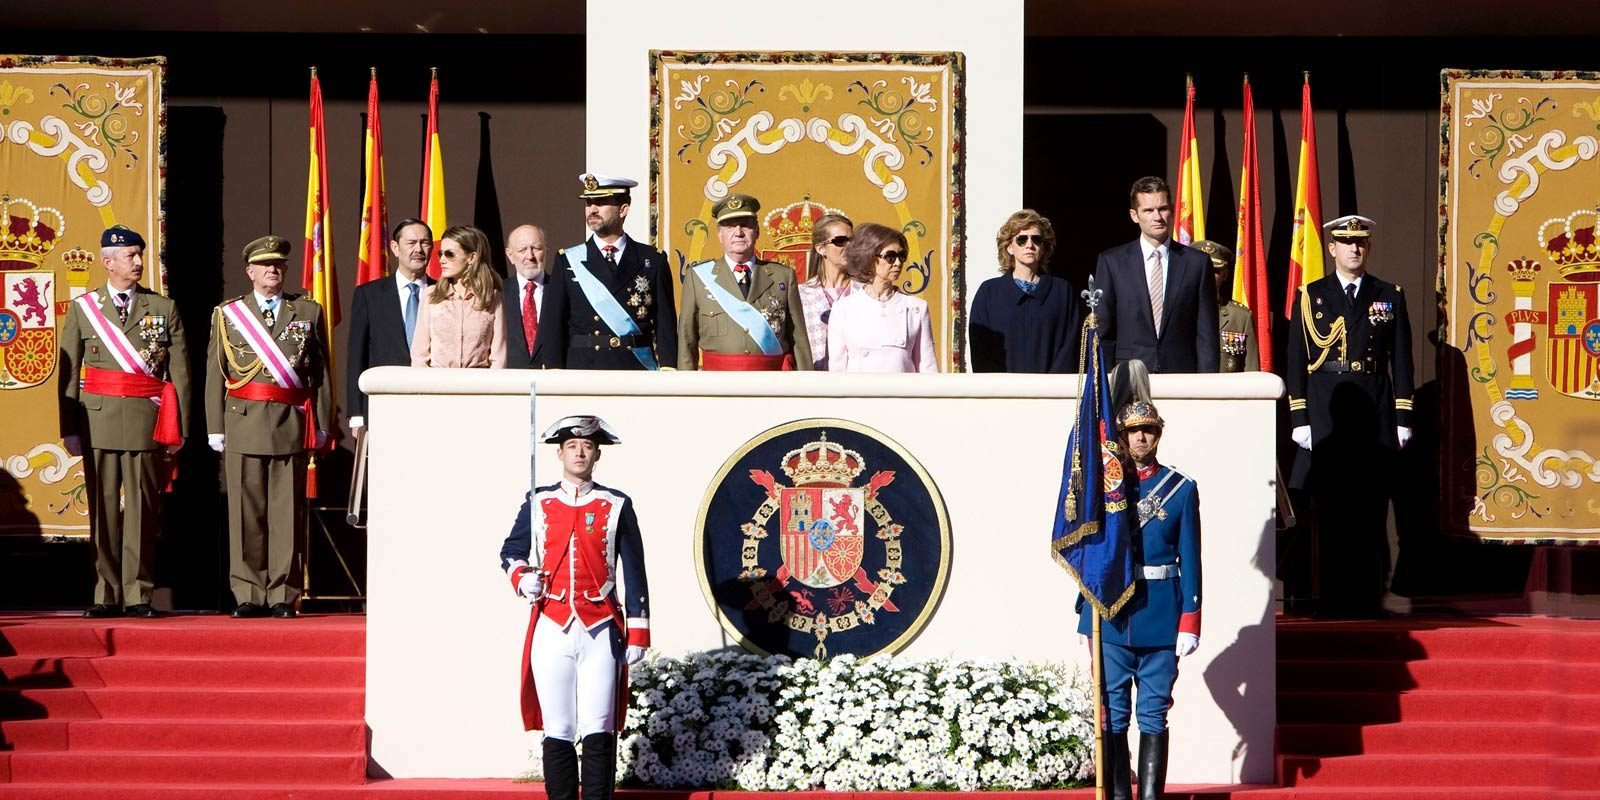 THE NATIONAL DAY OF SPAIN